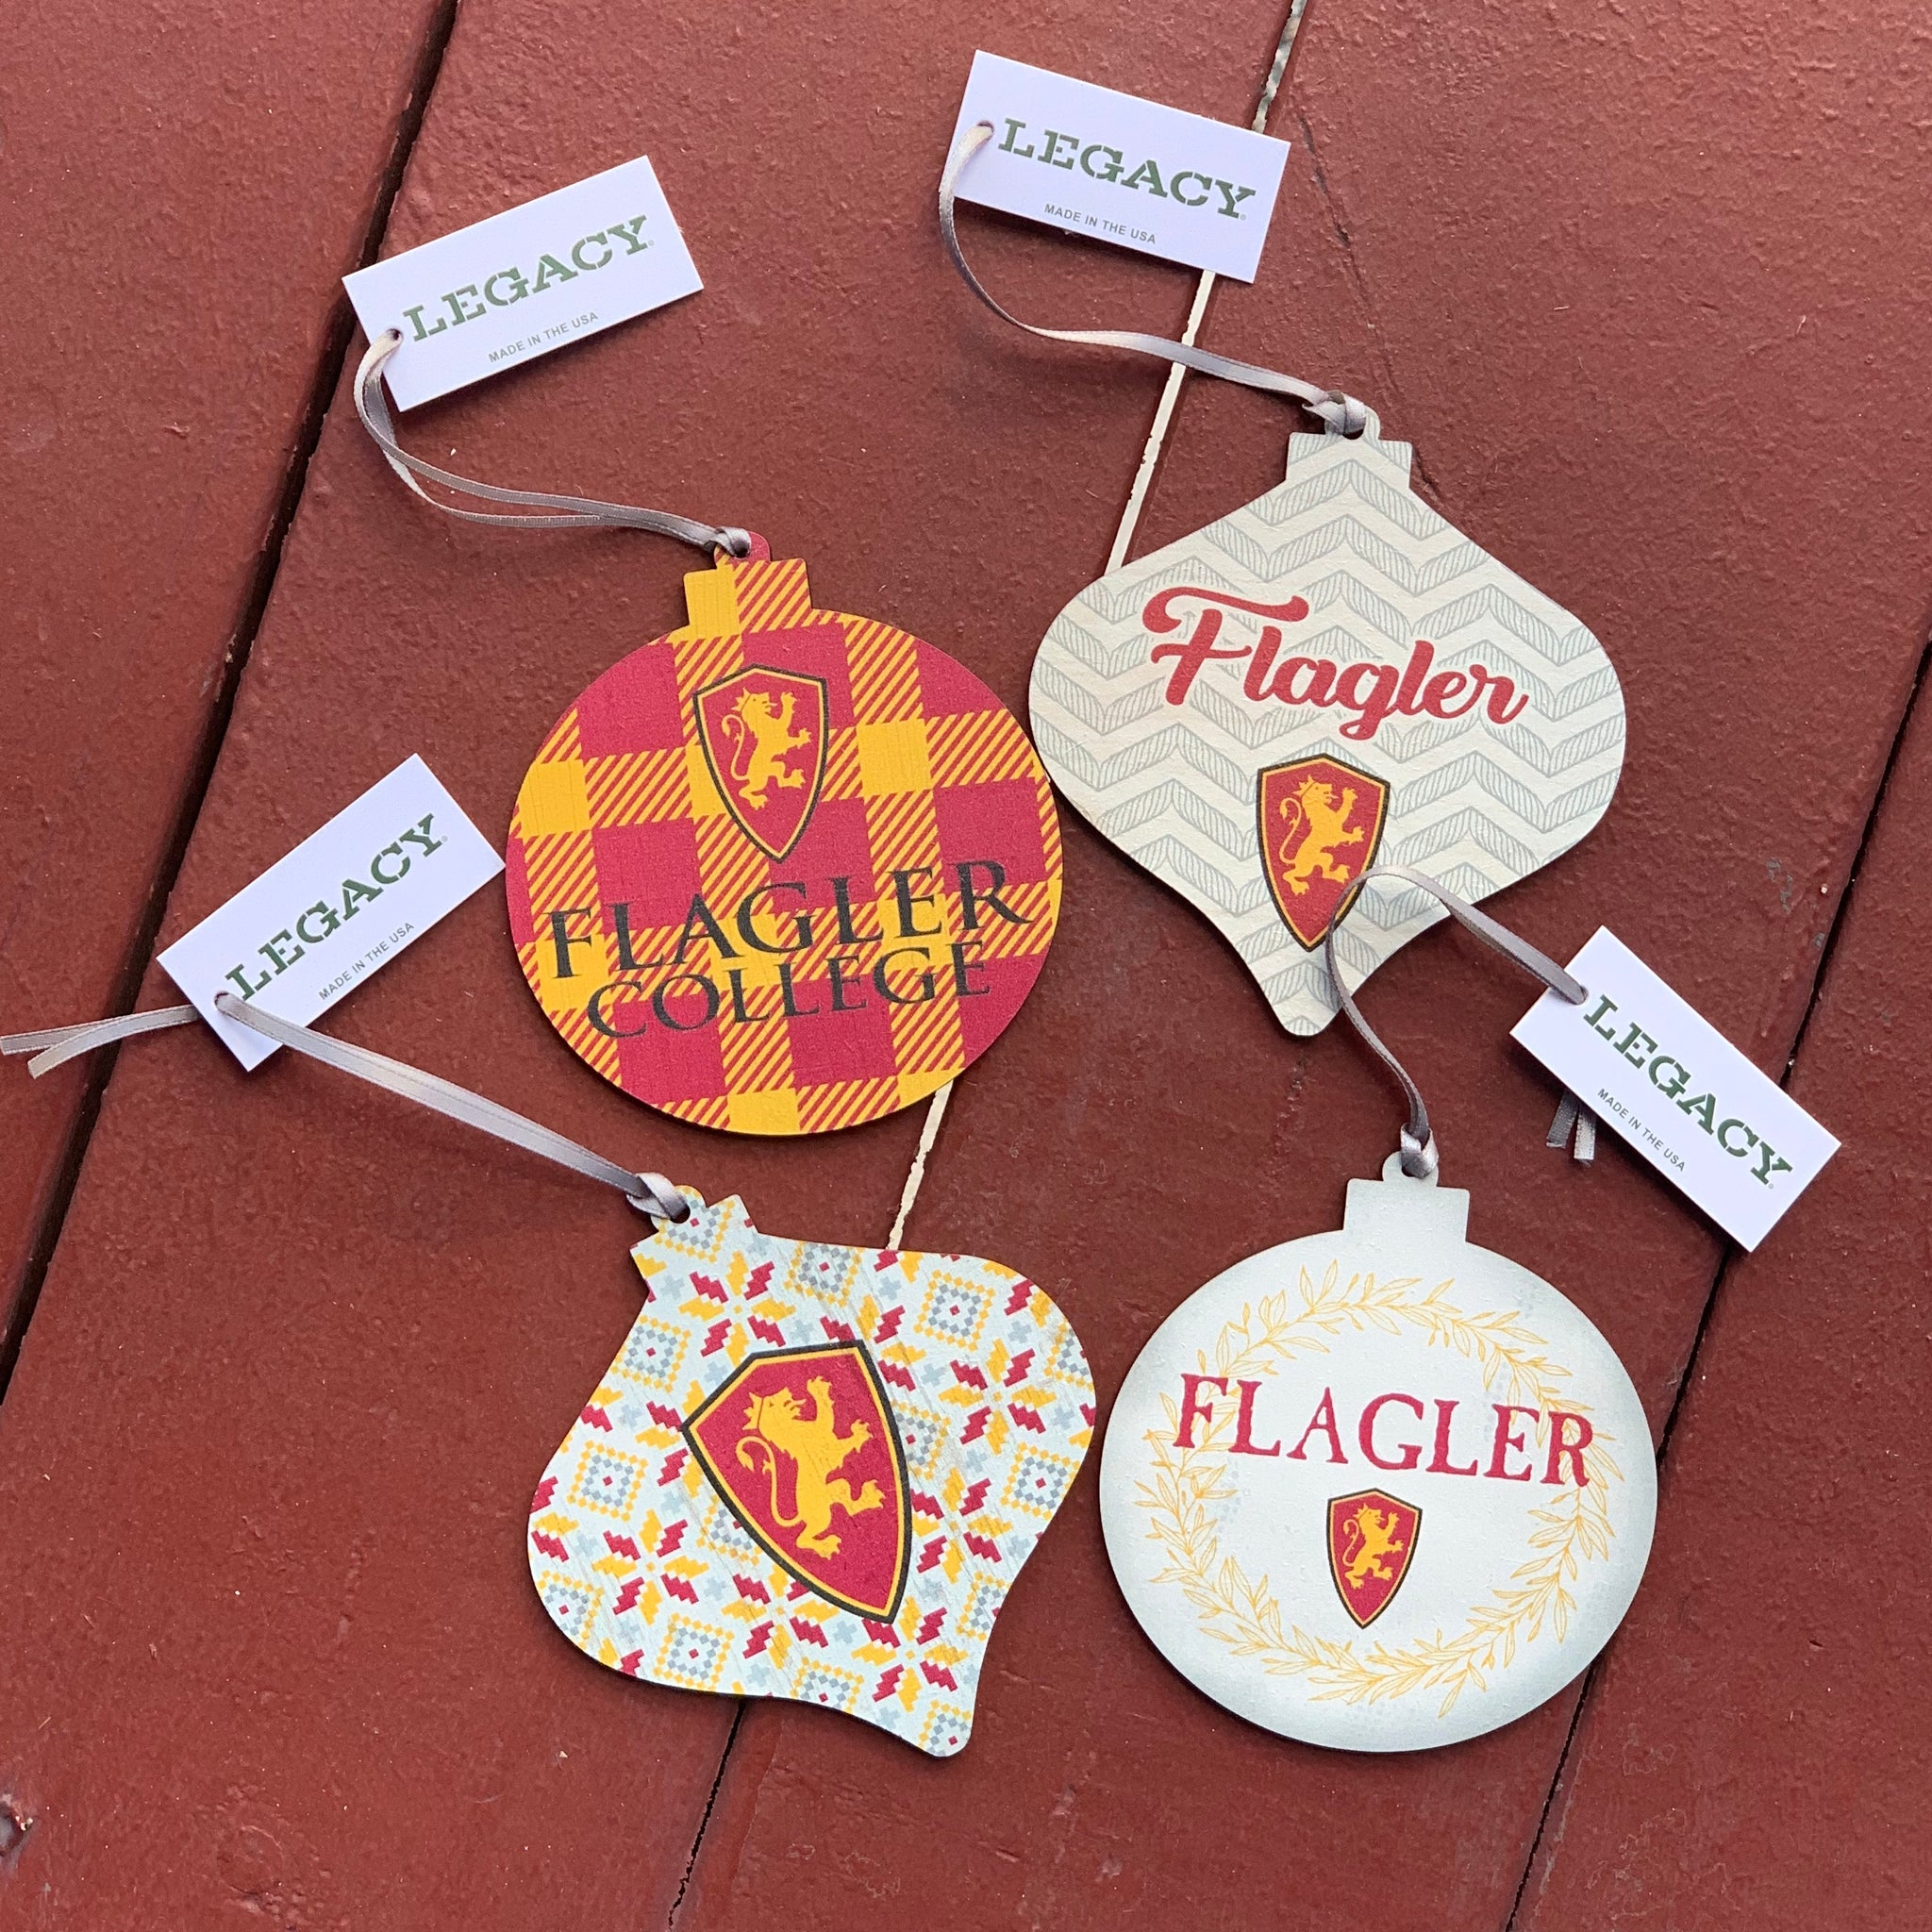 four wooden holiday ornaments in different styles. first ornament is red and gold plaid with red and gold lion shield and flagler college printed in black. Second has grey zig-zag lines with flagler printed in red cursive and red ad gold lion shield. third has red ad gold star flowers on it with large red and gold lion shield. the fourth is a cream color with a gold wreath outlining ornament and it has flagler printed in red with red and gold lion shield.